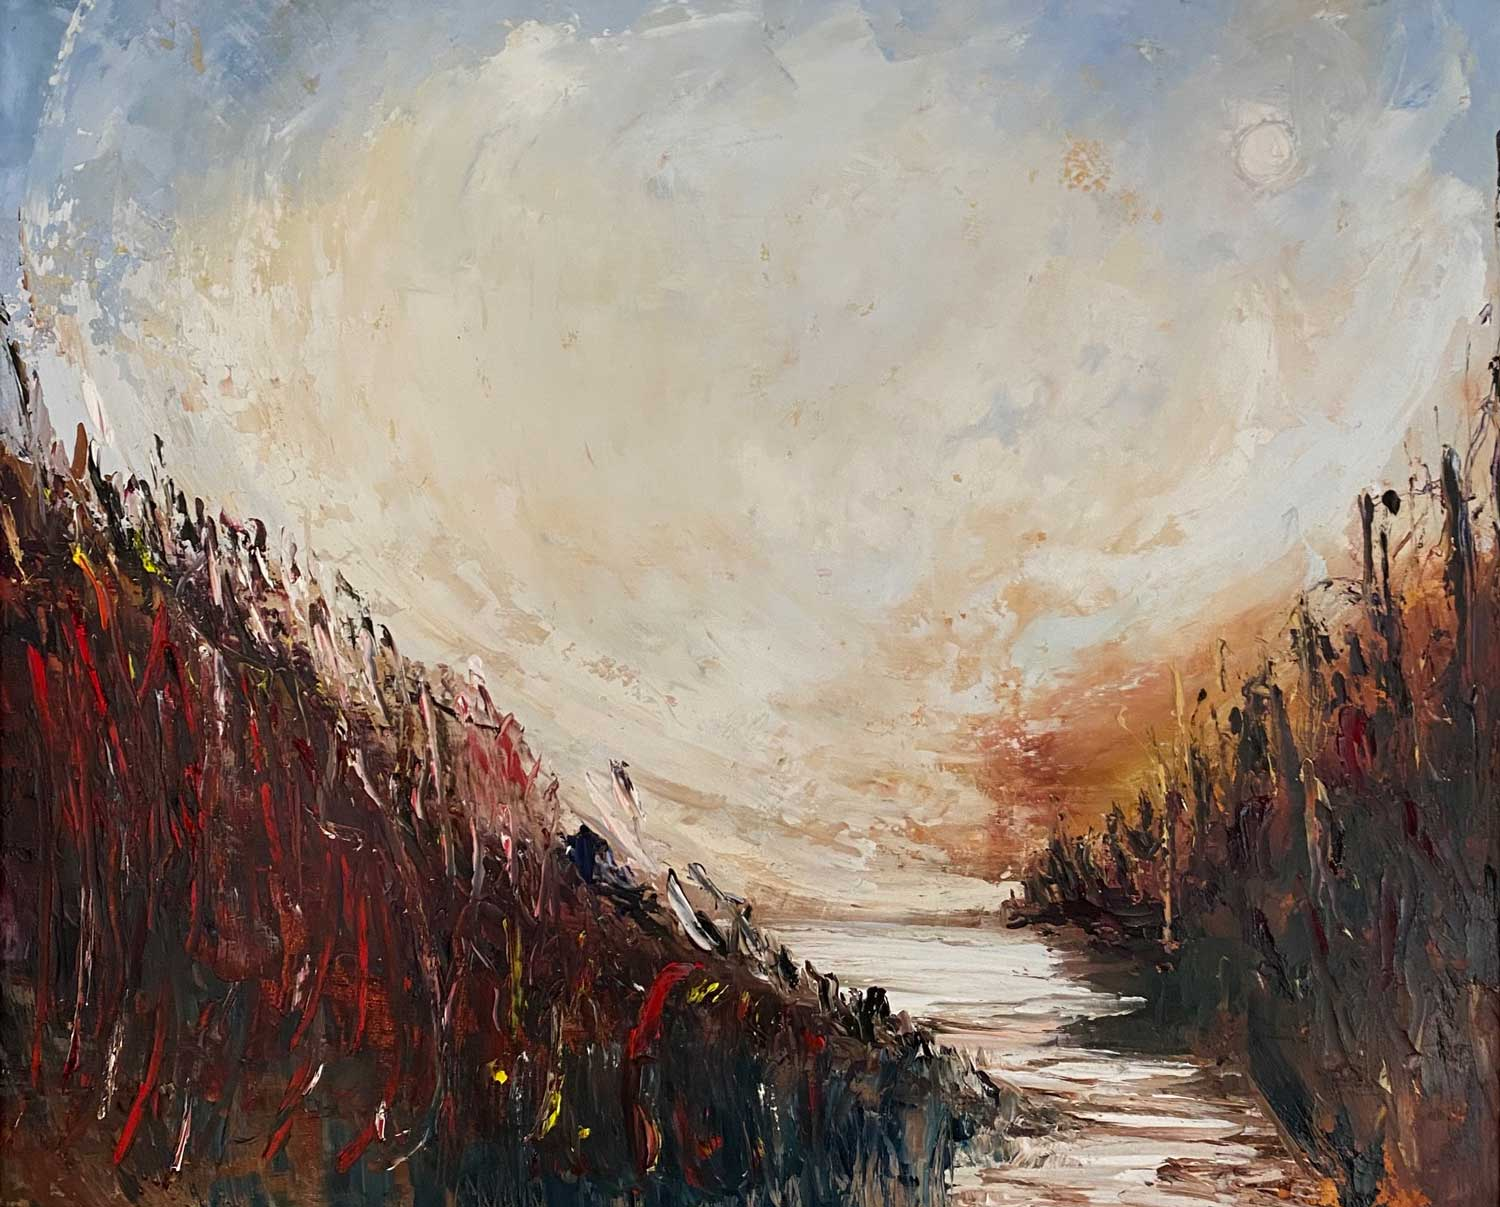 DOWN BY THE REED BED - oil painting